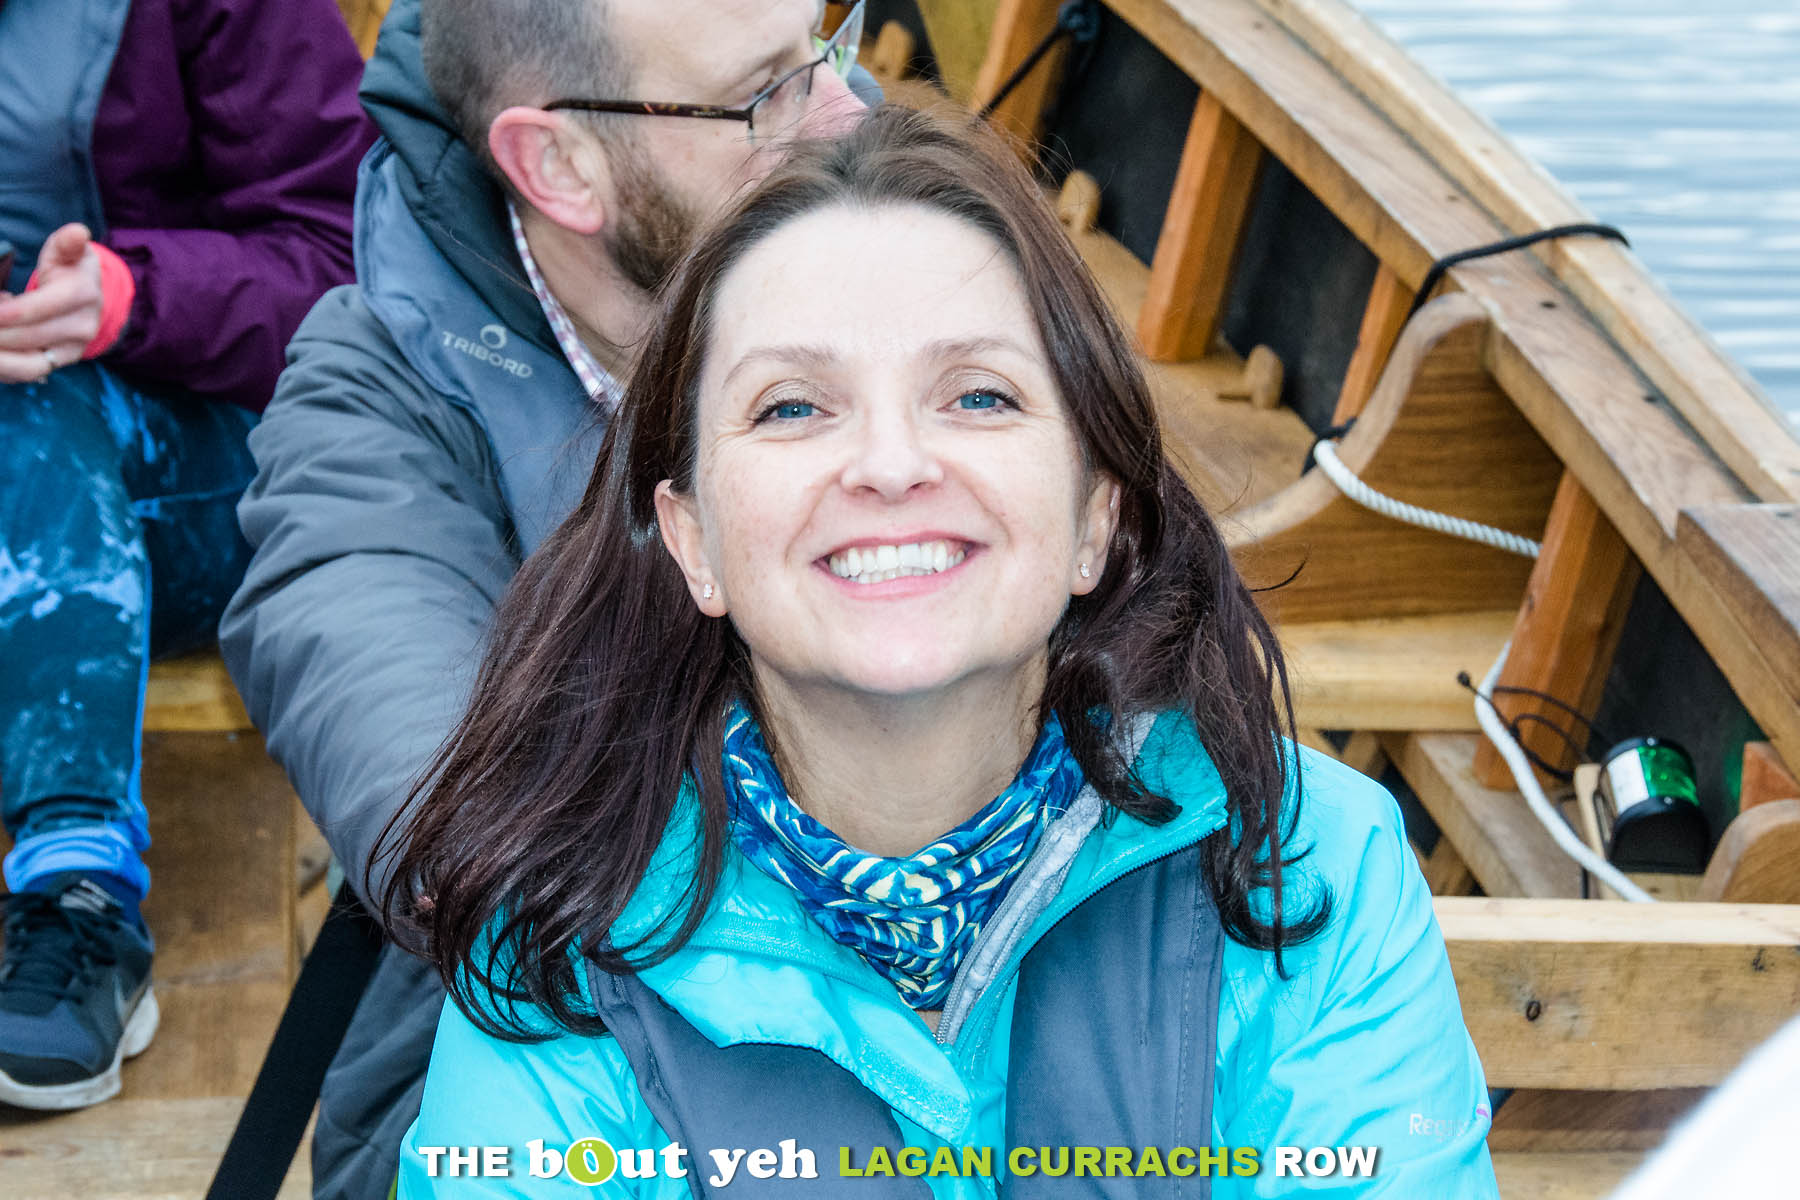 Sharon smiles for the camera, while taking part in the Bout Yeh Lagan Currachs row - photo 9228.